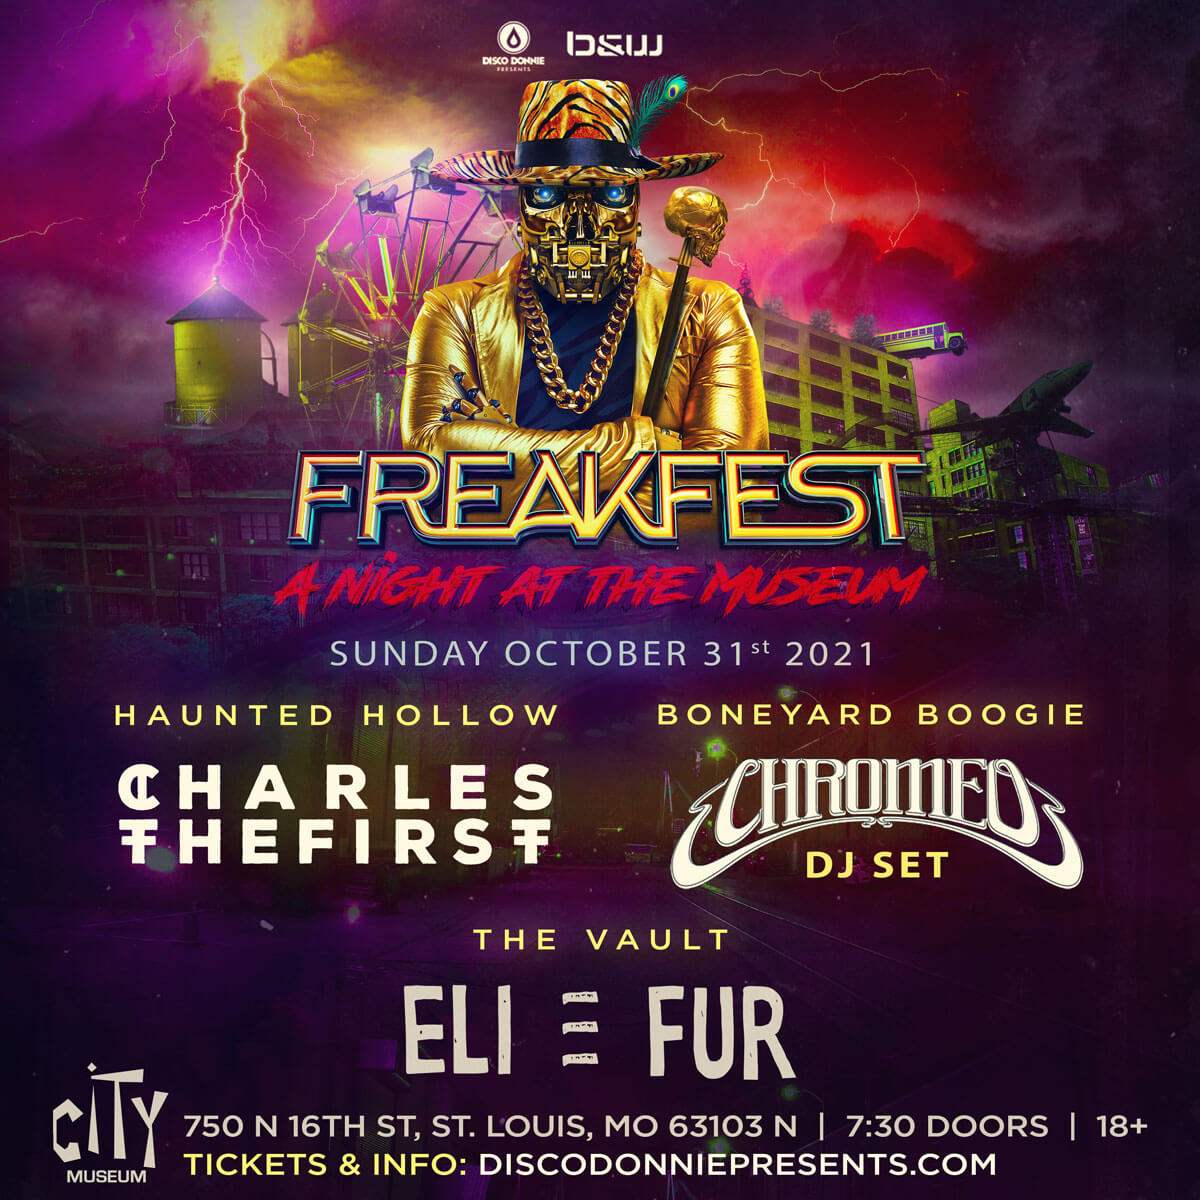 CharlestheFirst, Chromeo, Eli & Fur at City Museum in St Louis